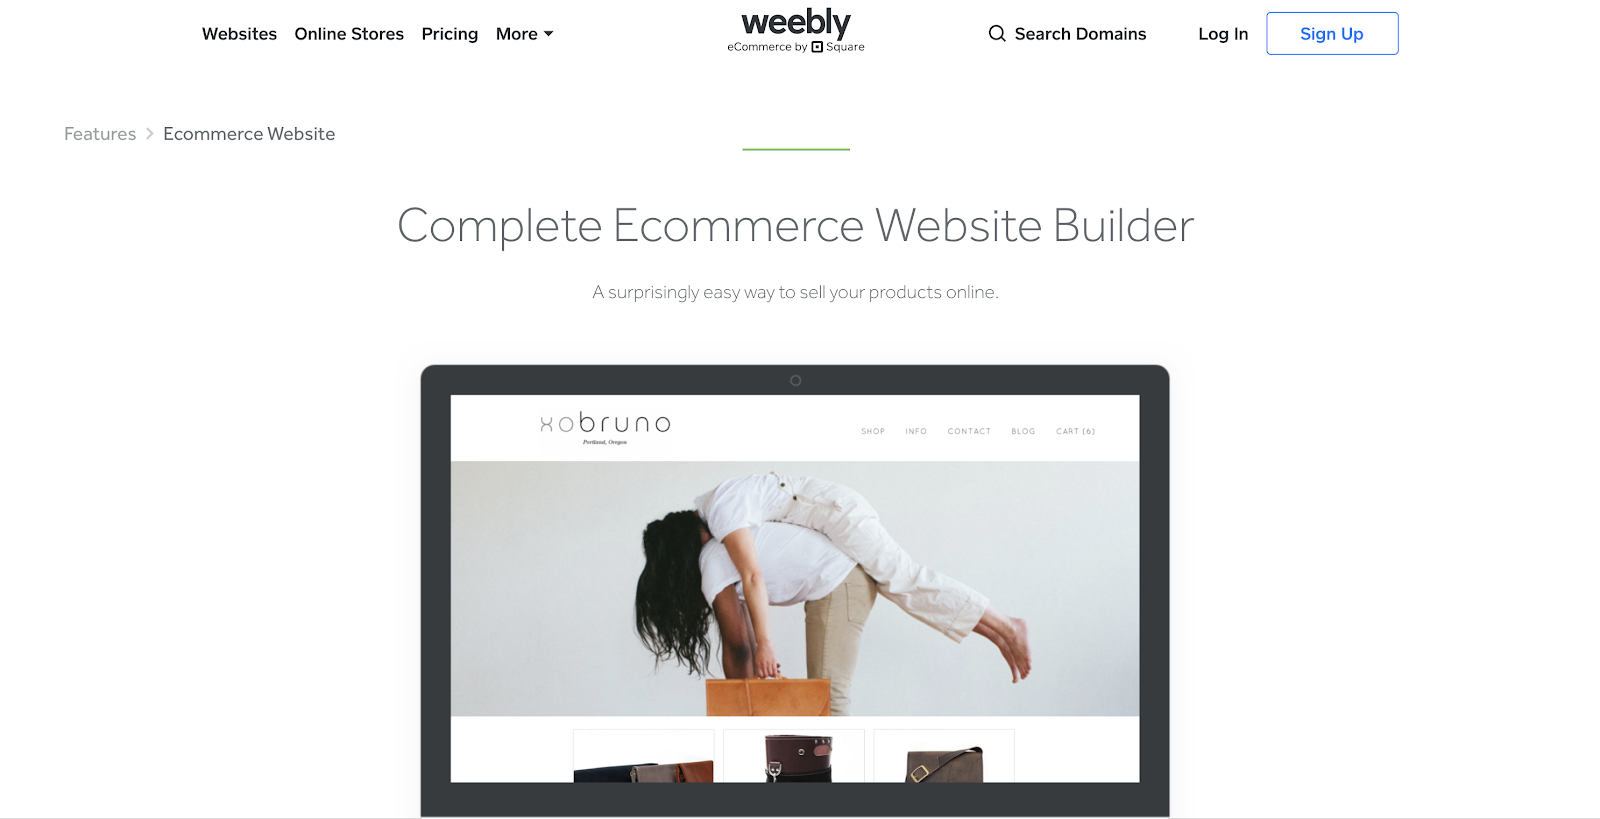 Weebly eCommerce Website Builder Homepage Screenshot